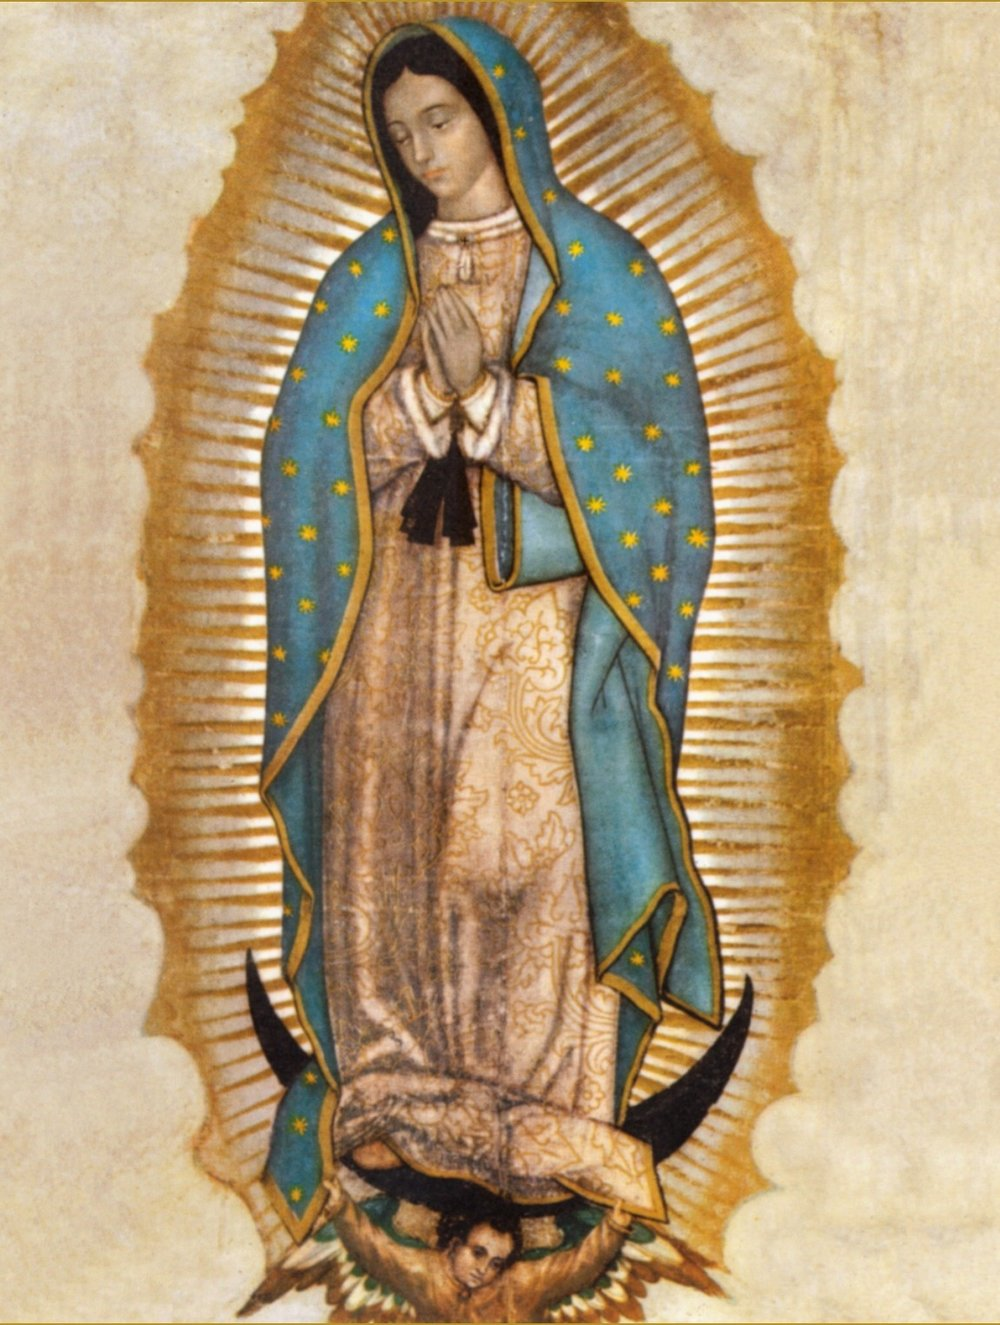 <h3>Our Lady of Guadalupe</h3>